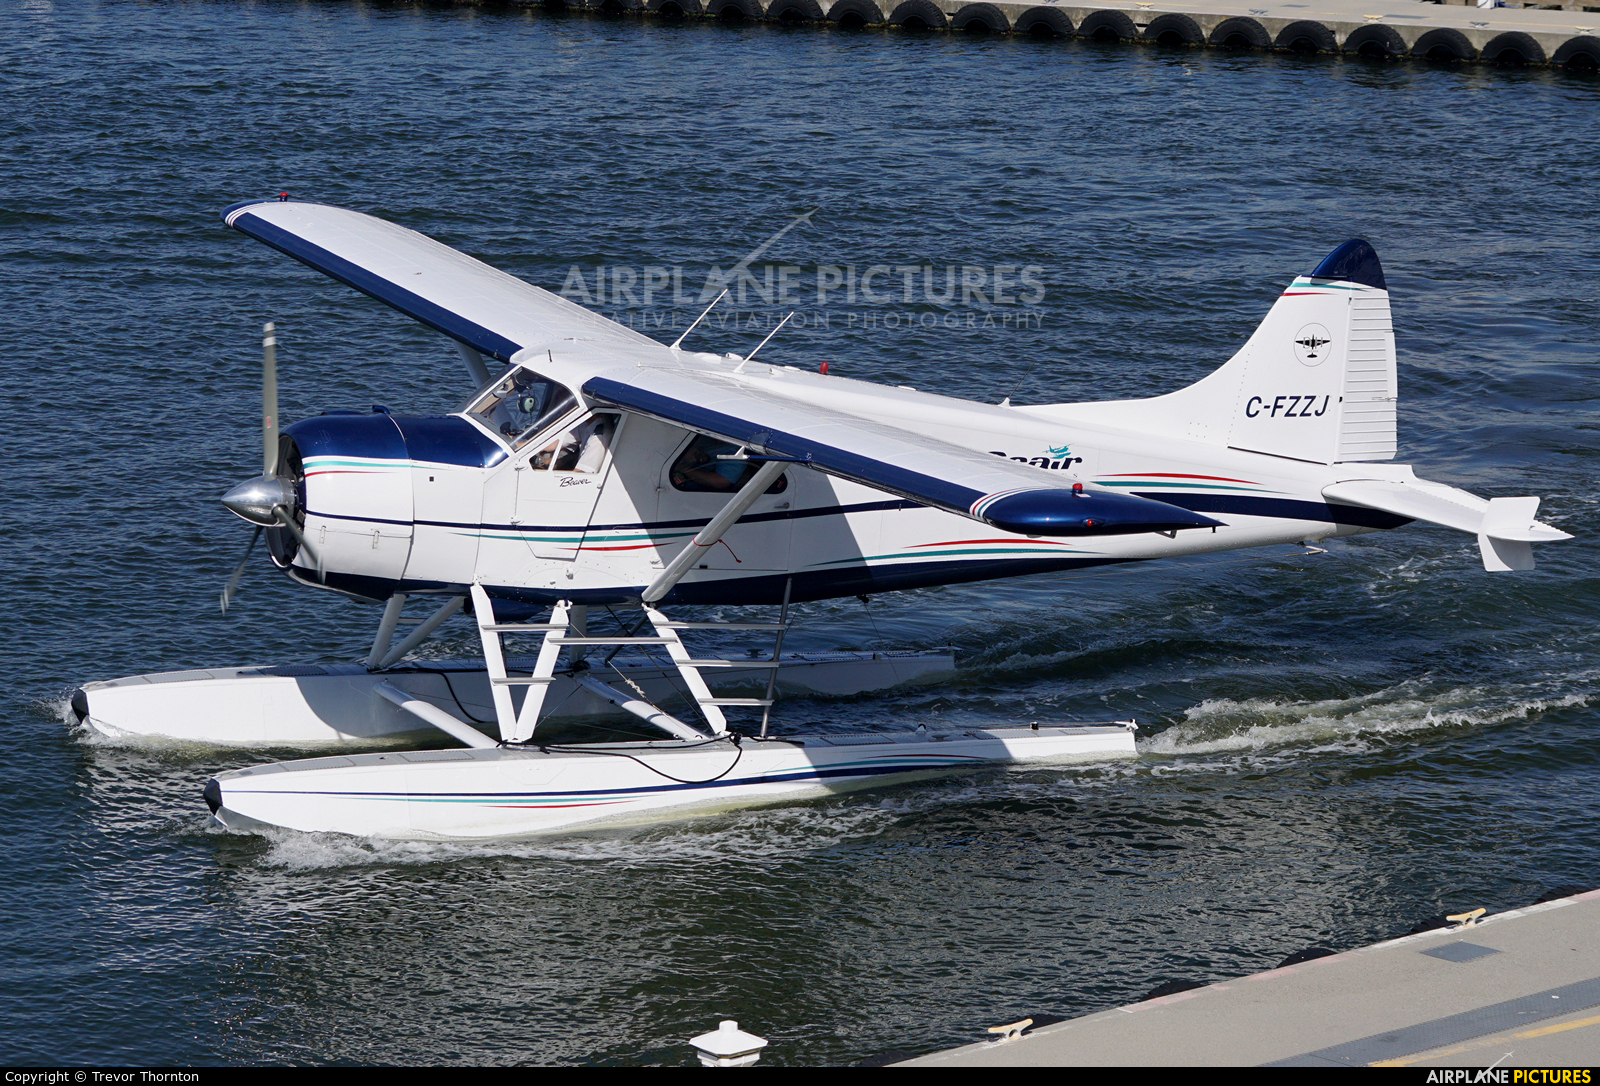 Seair Seaplanes C-FZZJ aircraft at Vancouver Coal Harbour, BC